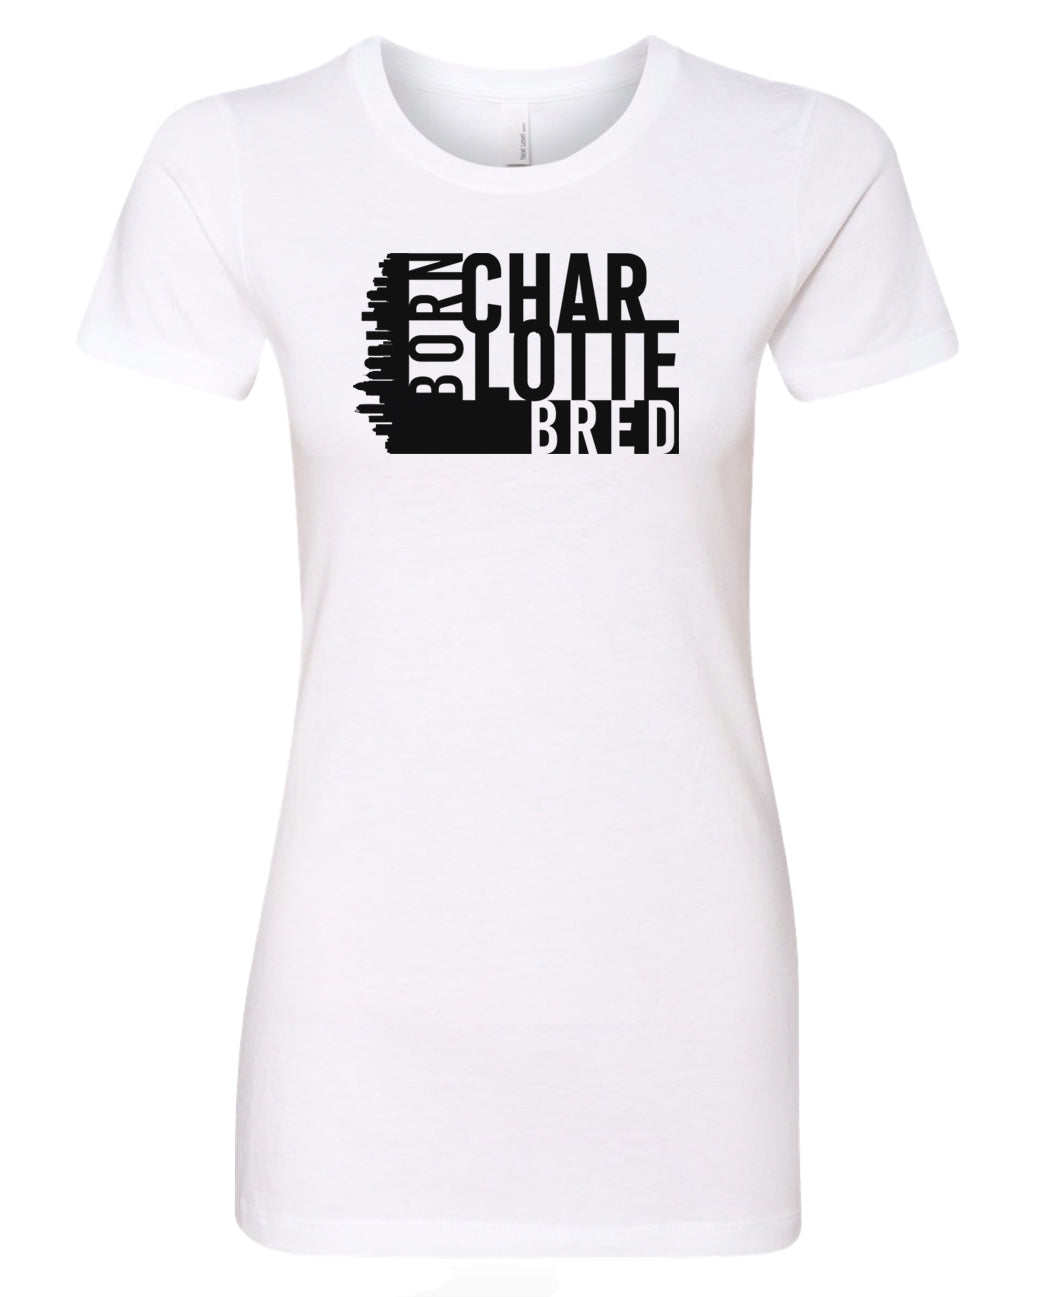 white Charlotte born and bred women's t-shirt